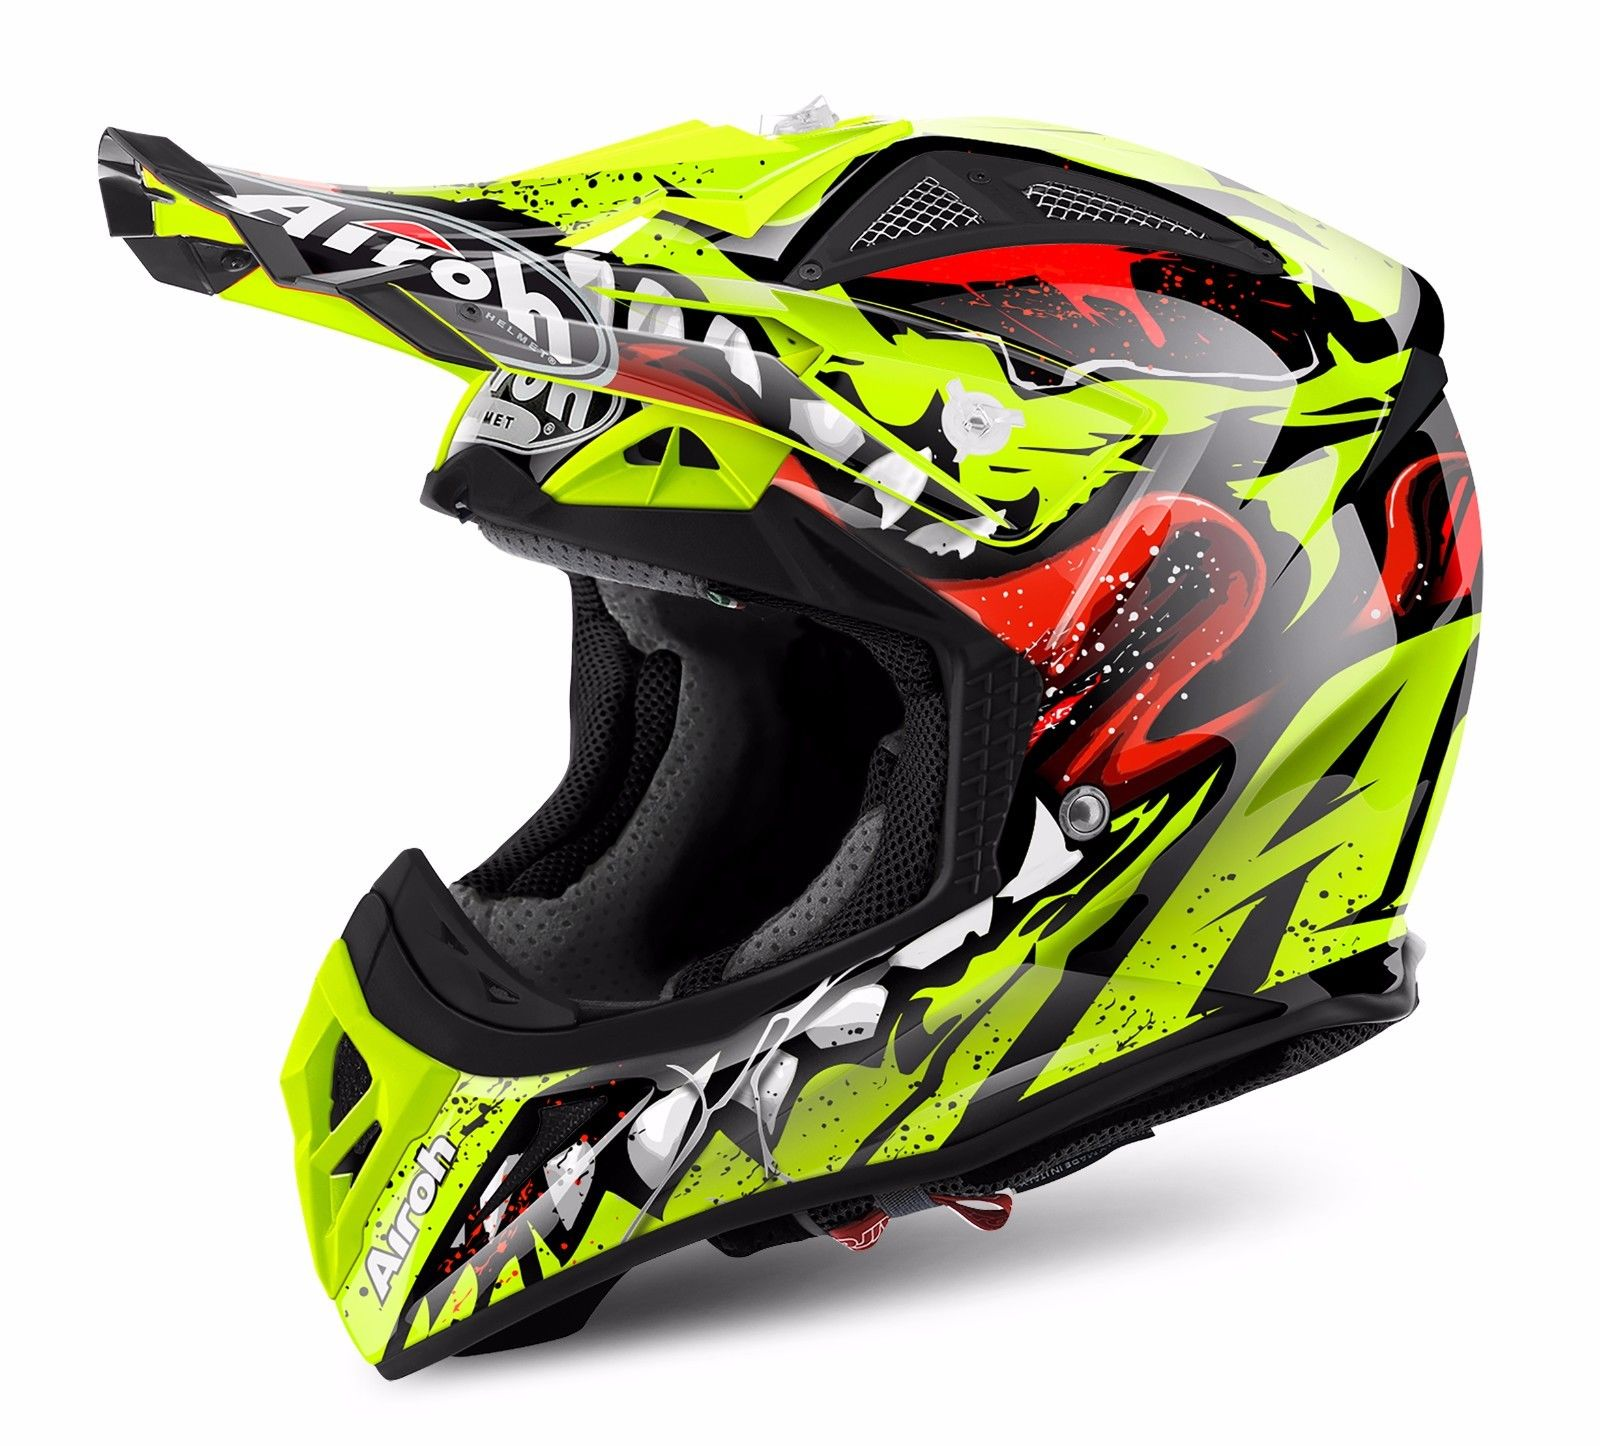 airoh aviator 2 2 grim yellow motocross mx helmet matt gardiner motocross. Black Bedroom Furniture Sets. Home Design Ideas